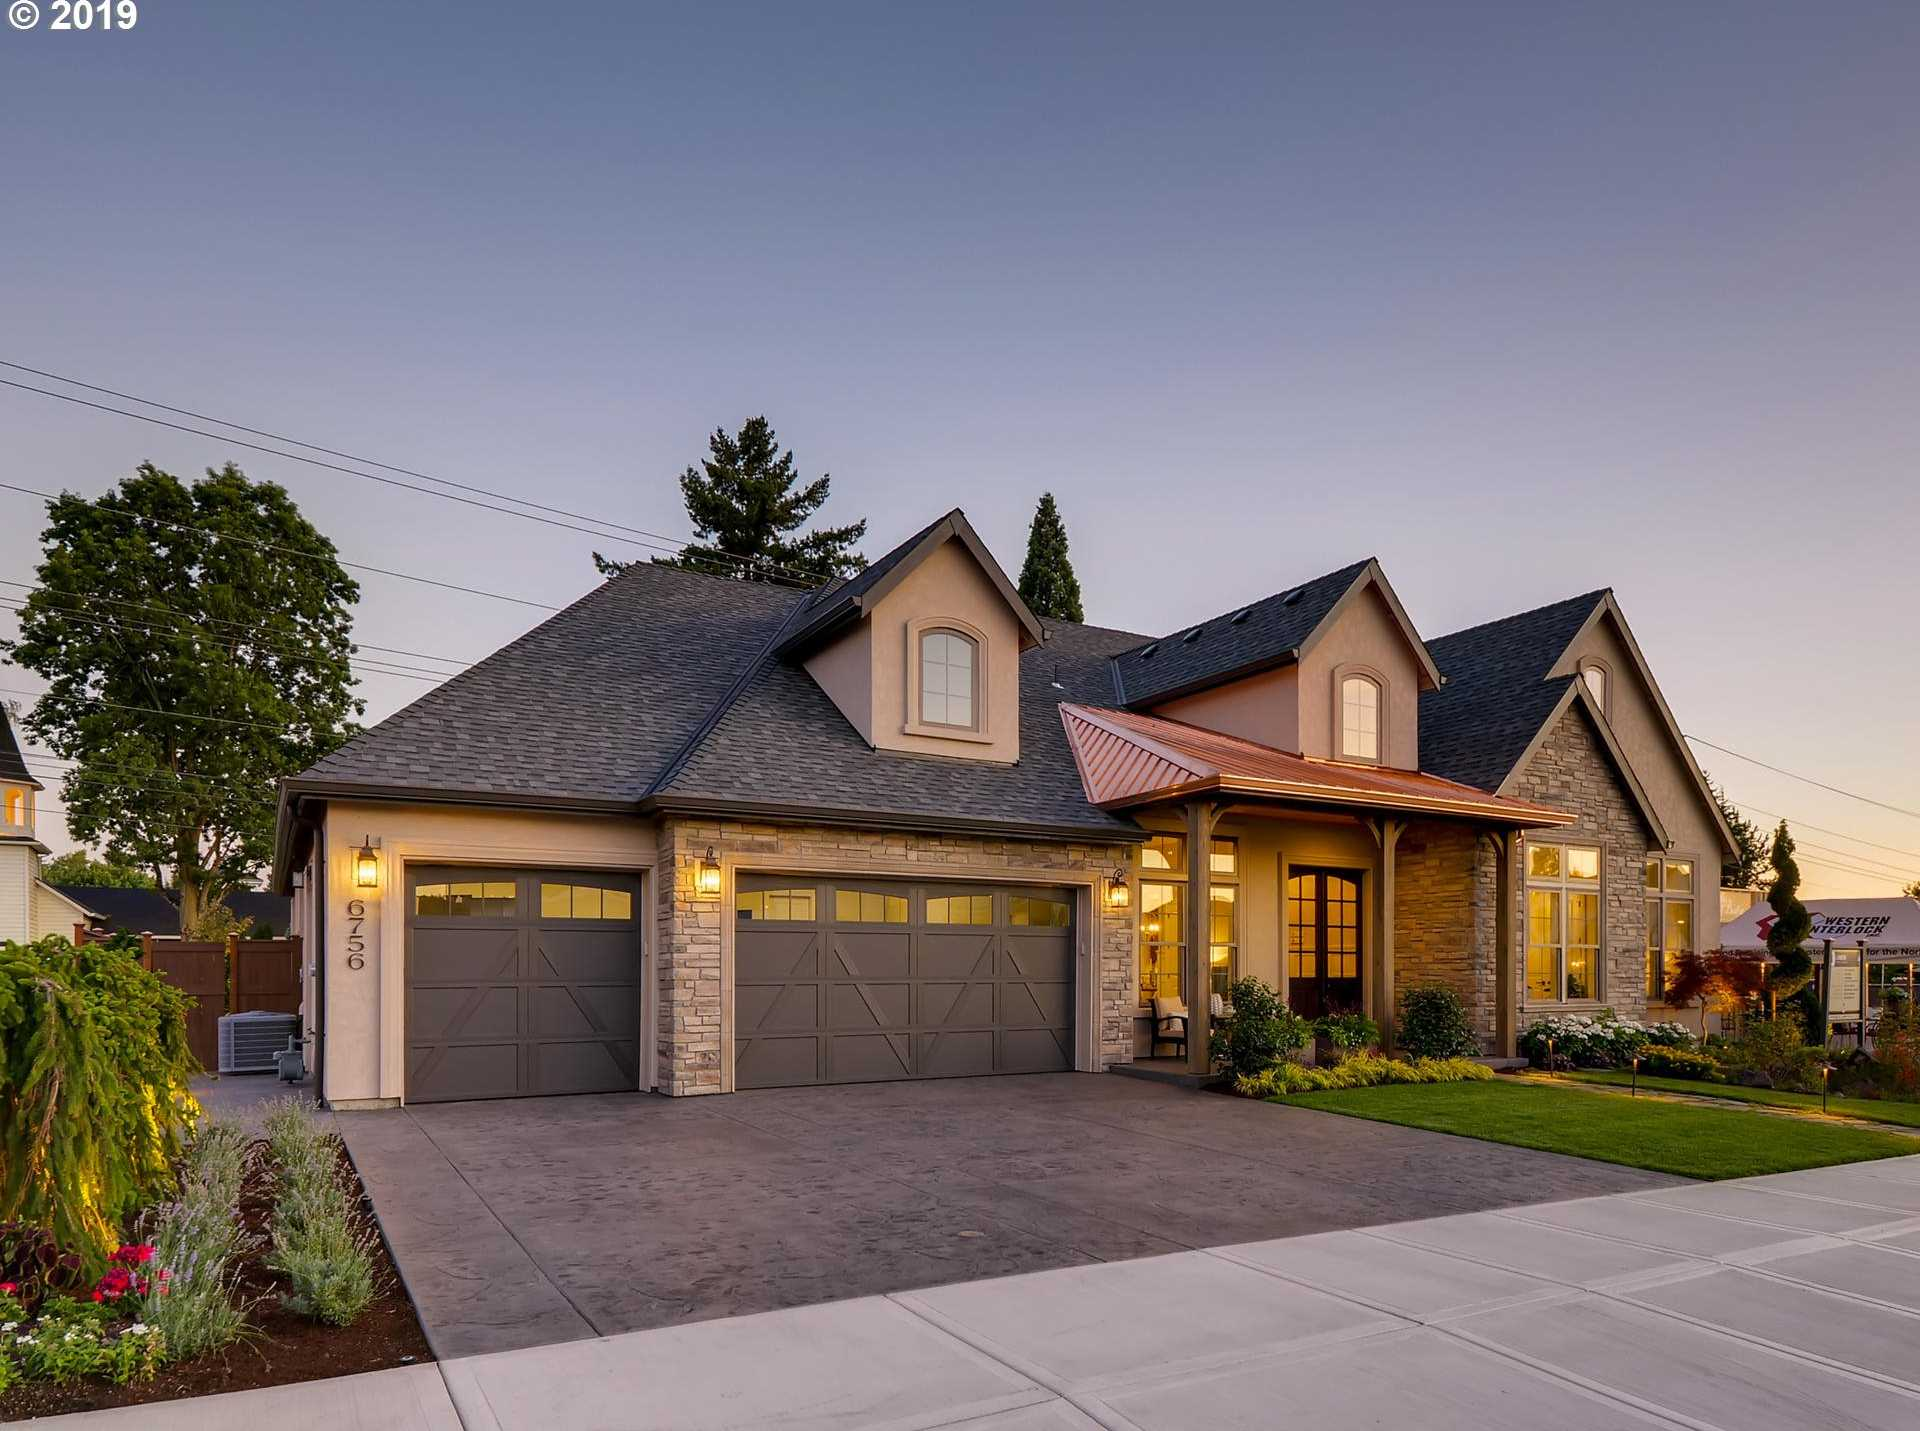 $1,195,000 - 3Br/3Ba -  for Sale in Stafford Meadows, Wilsonville